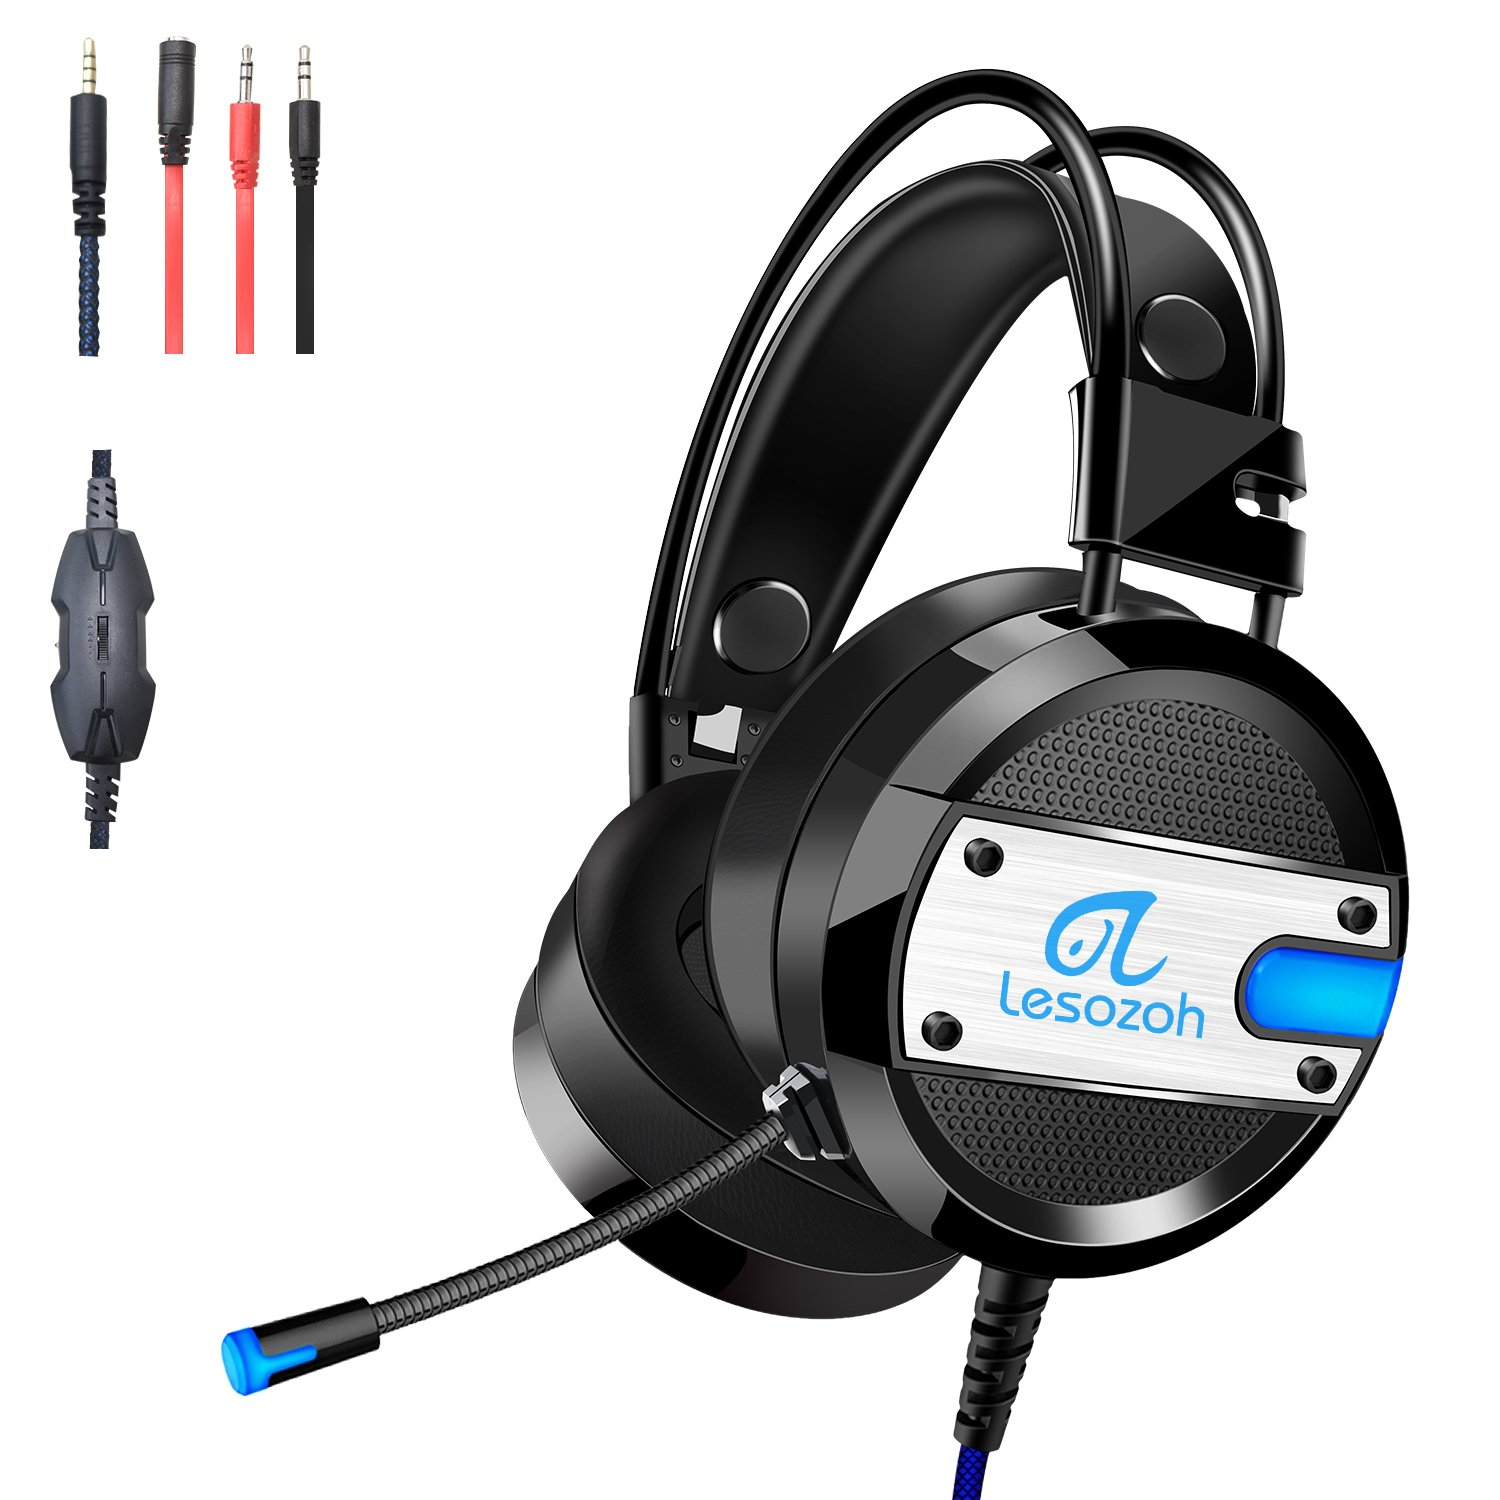 Lesozoh A10 Gaming Headset with Microphone,Professional Wired Gaming Bass Over-Ear Headphones with Mic 3.5mm, Noise Cancelling & Volume Control for Cell Phone PC PS4 Xbox One Laptop and Mac